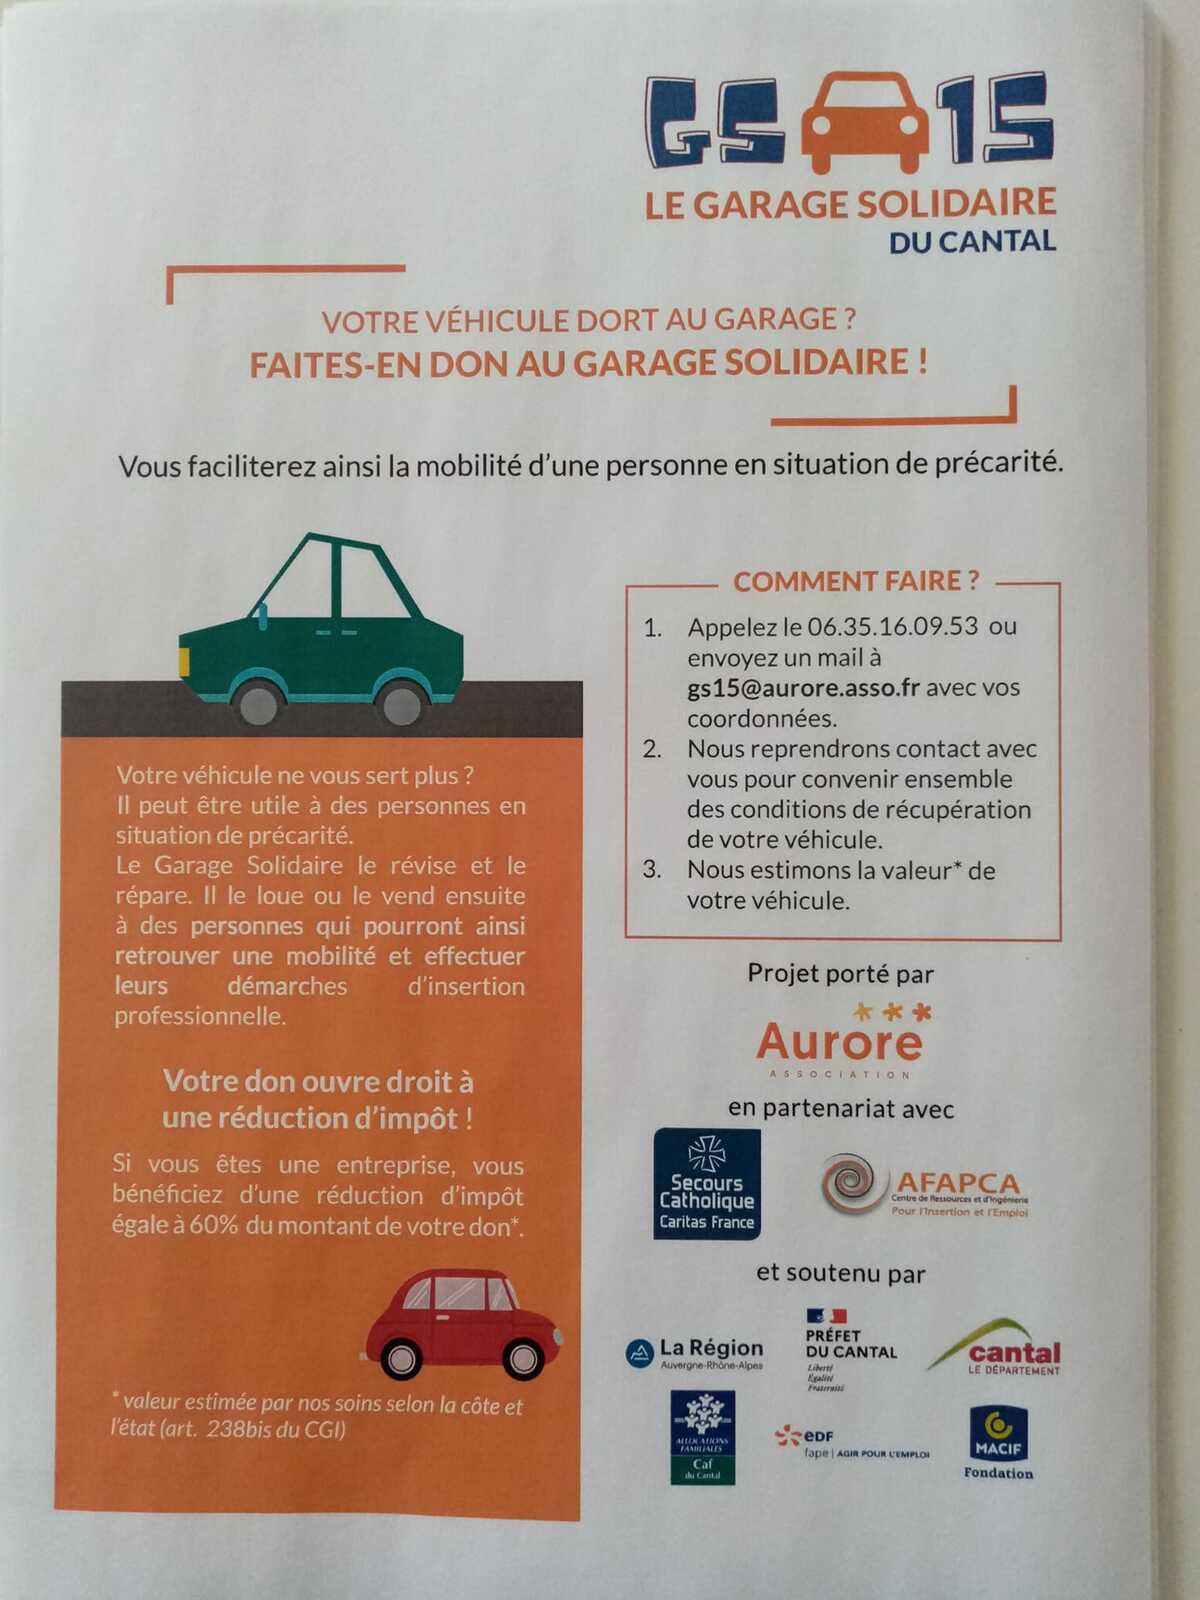 Garage solidaire du Cantal